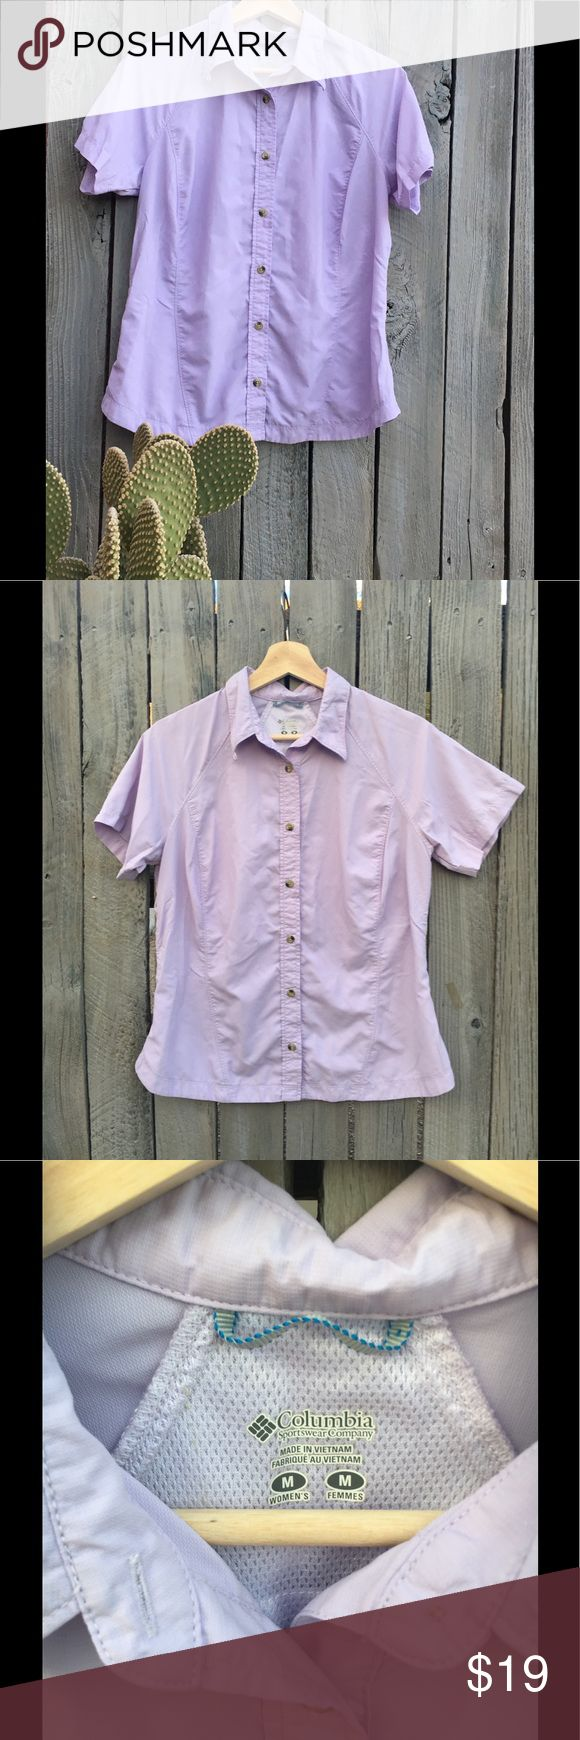 Columbia Sportswear Omni-Dry Women's shirt Light lavender women's Columbia Sportswear Company shirt. Buttons down the front, mesh lining around the neck for ventilation, tapered on the sides for comfort and great style.  Omni-Dry quick evaporation technology. Columbia Tops Button Down Shirts